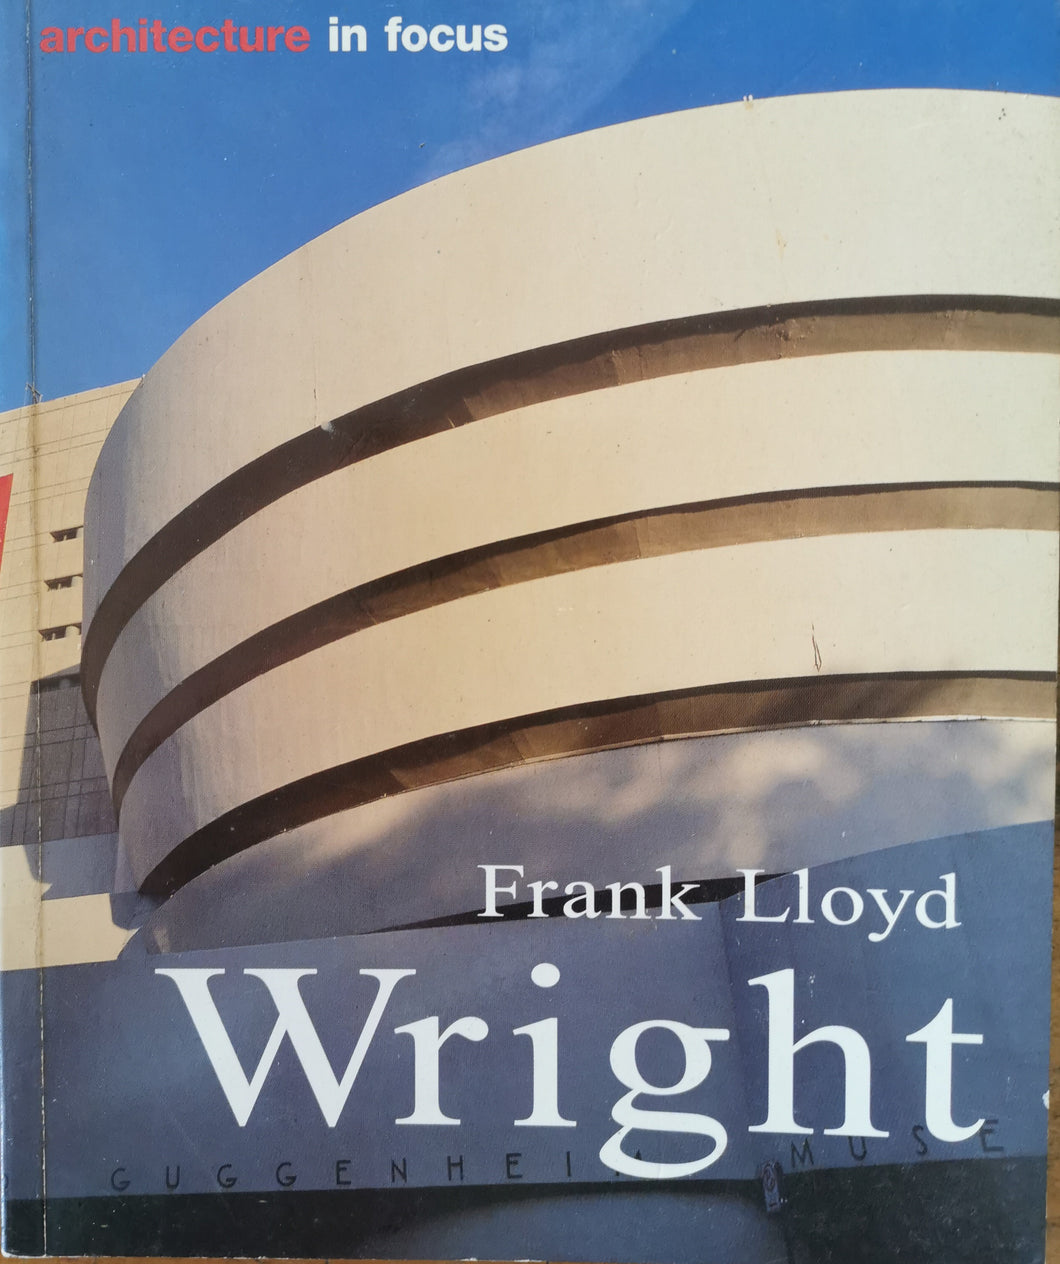 Frank Lloyd Wright - Life and Work